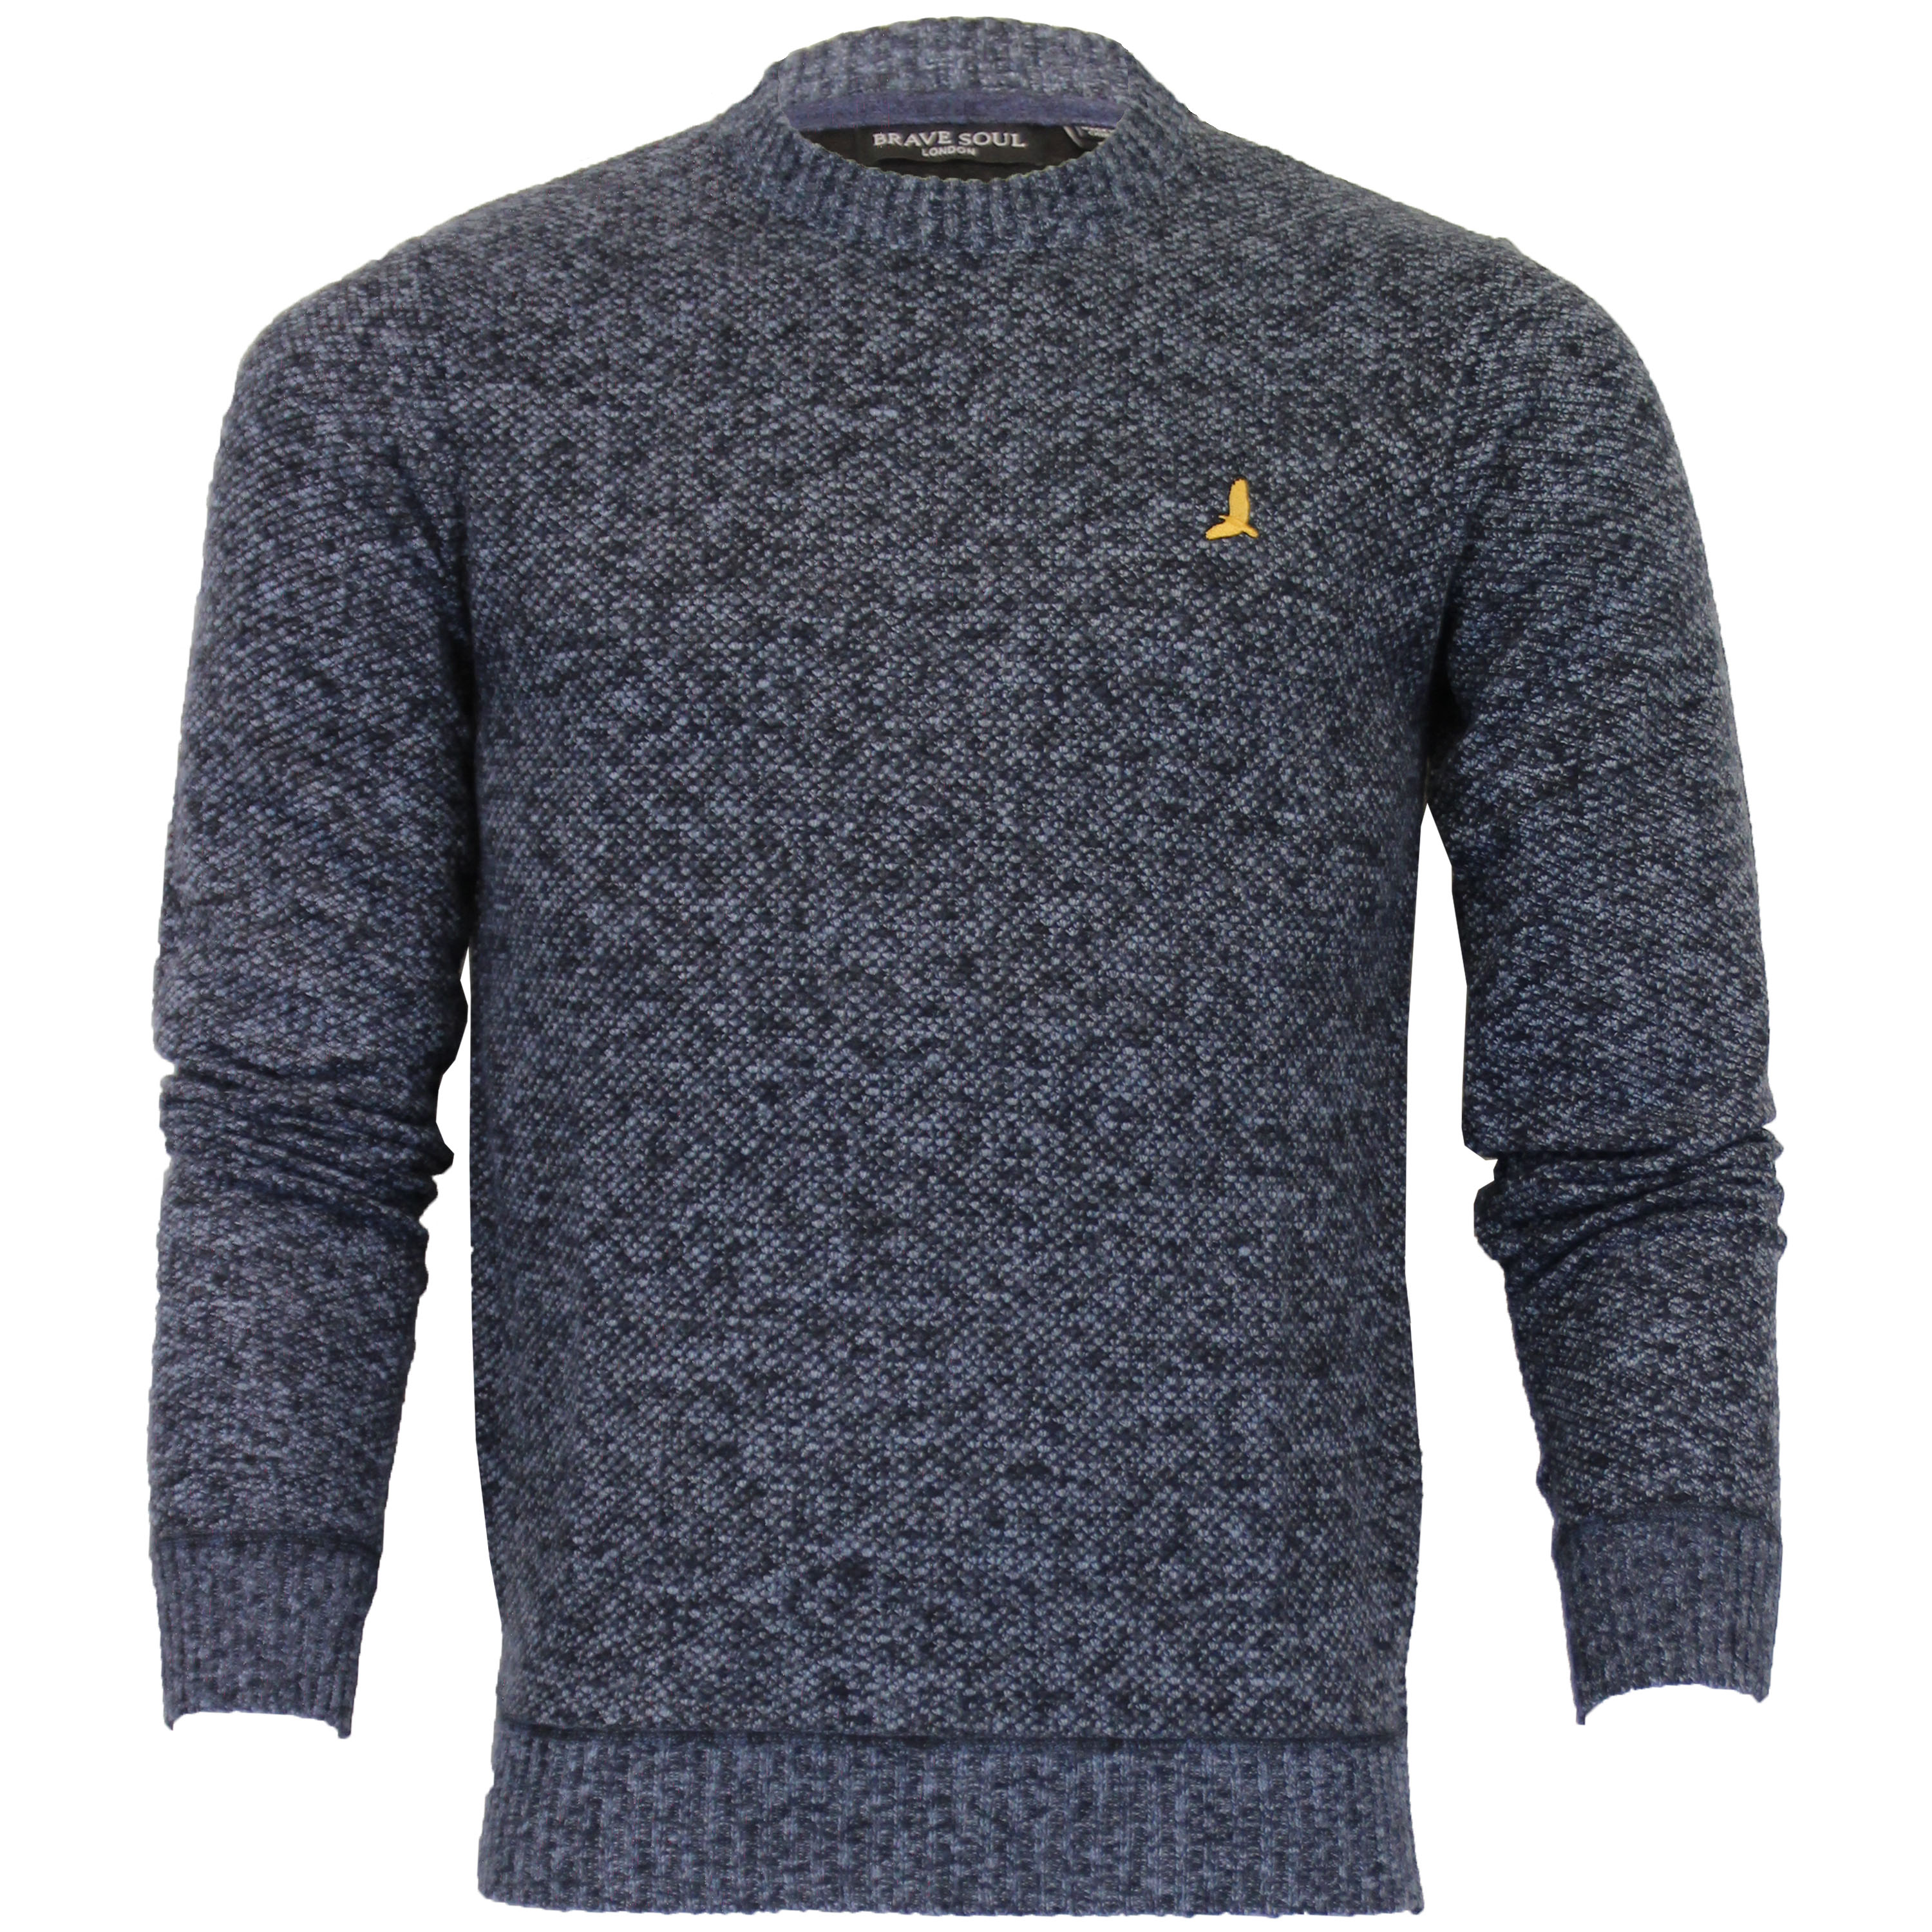 Mens-Jumper-Brave-Soul-Knitted-Sweater-Pullover-GOODWIN-Crew-Neck-Top-Winter-New thumbnail 14